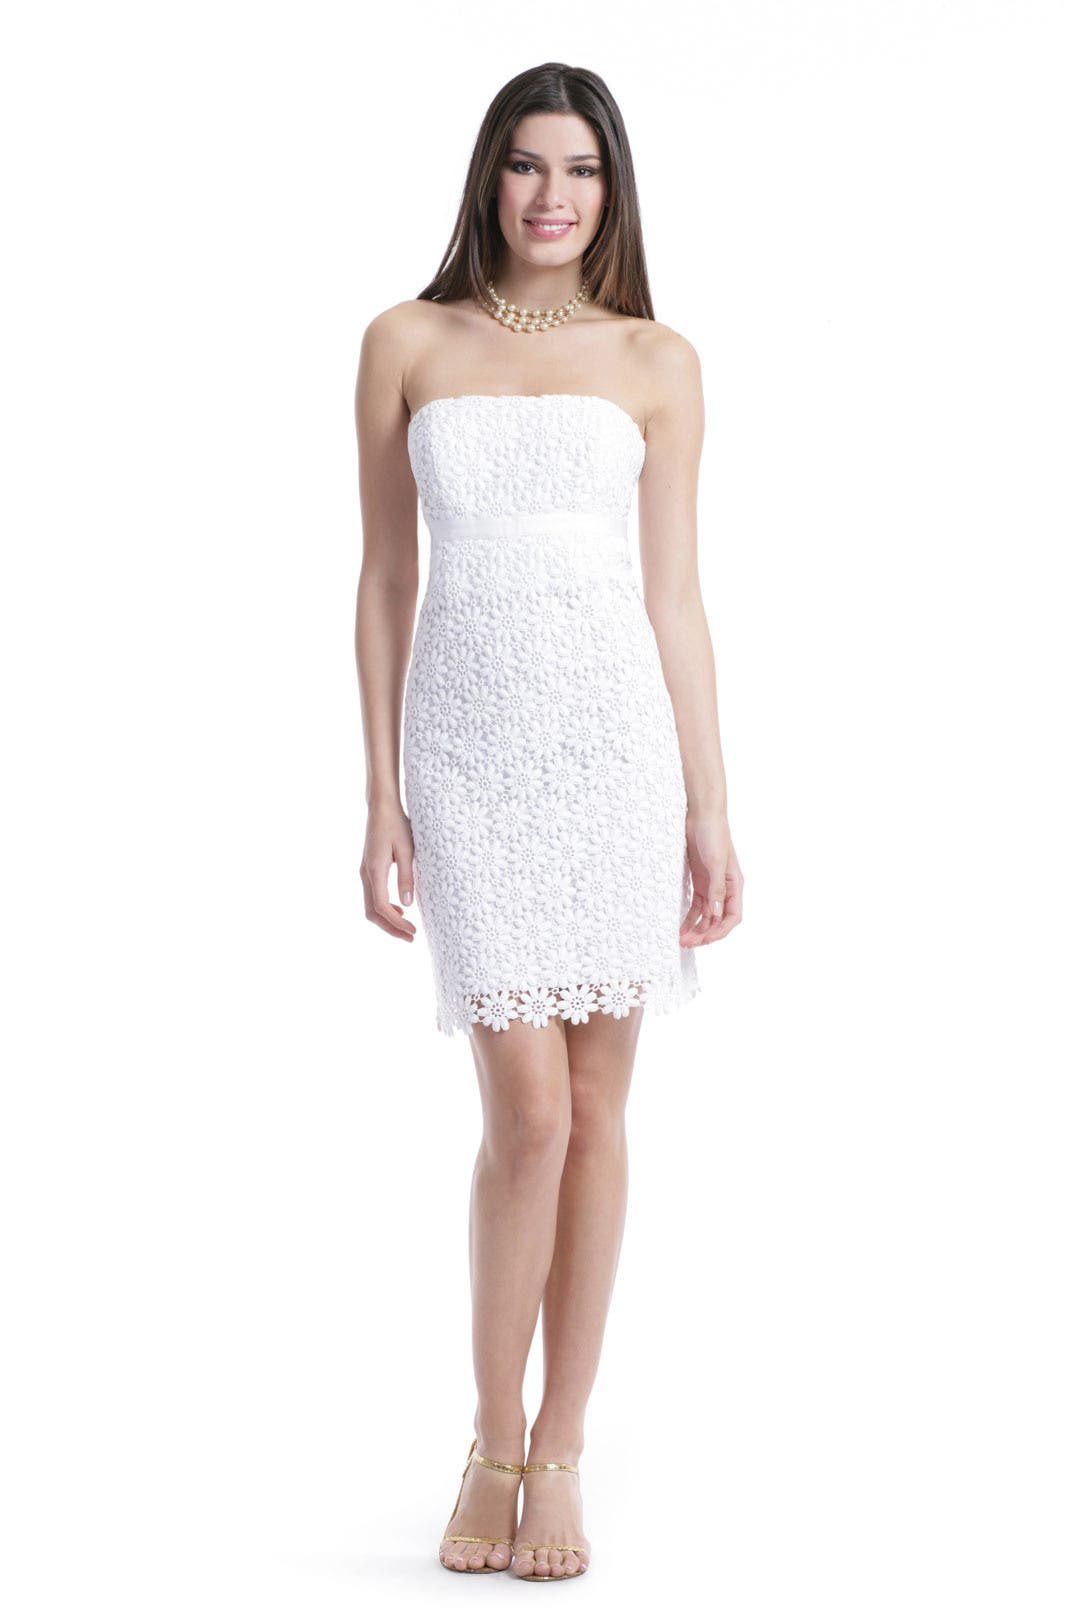 Bowen Lace Dress by Lilly Pulitzer